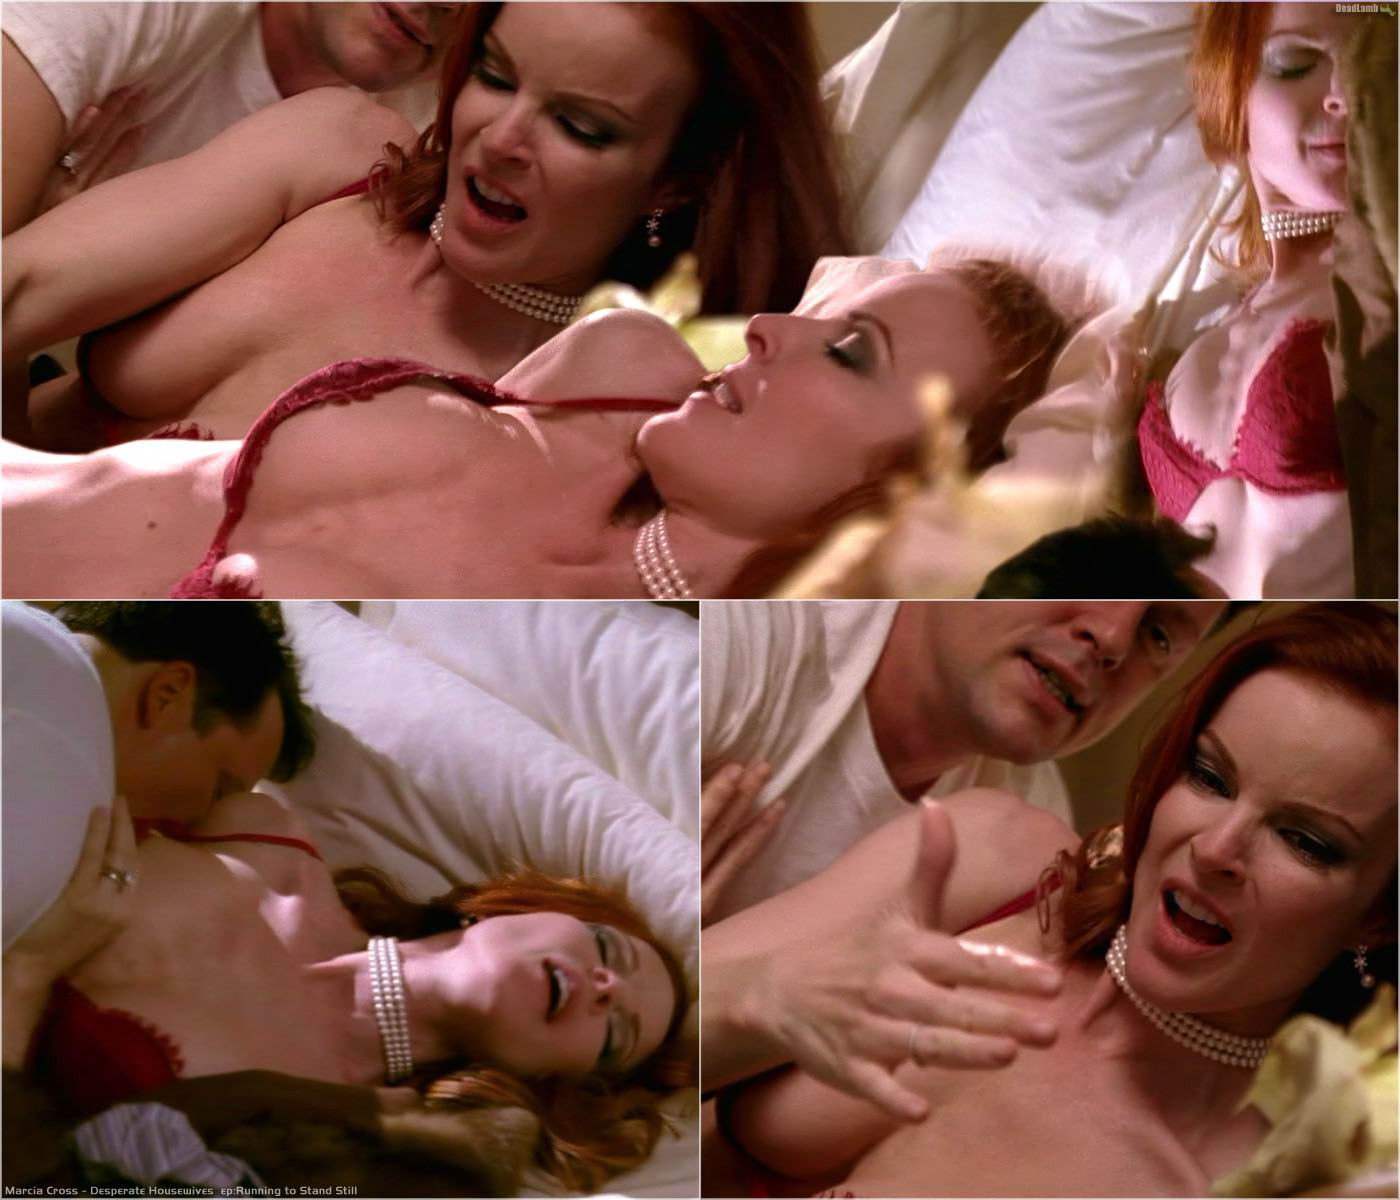 Marcia cross naked shower photos that DD